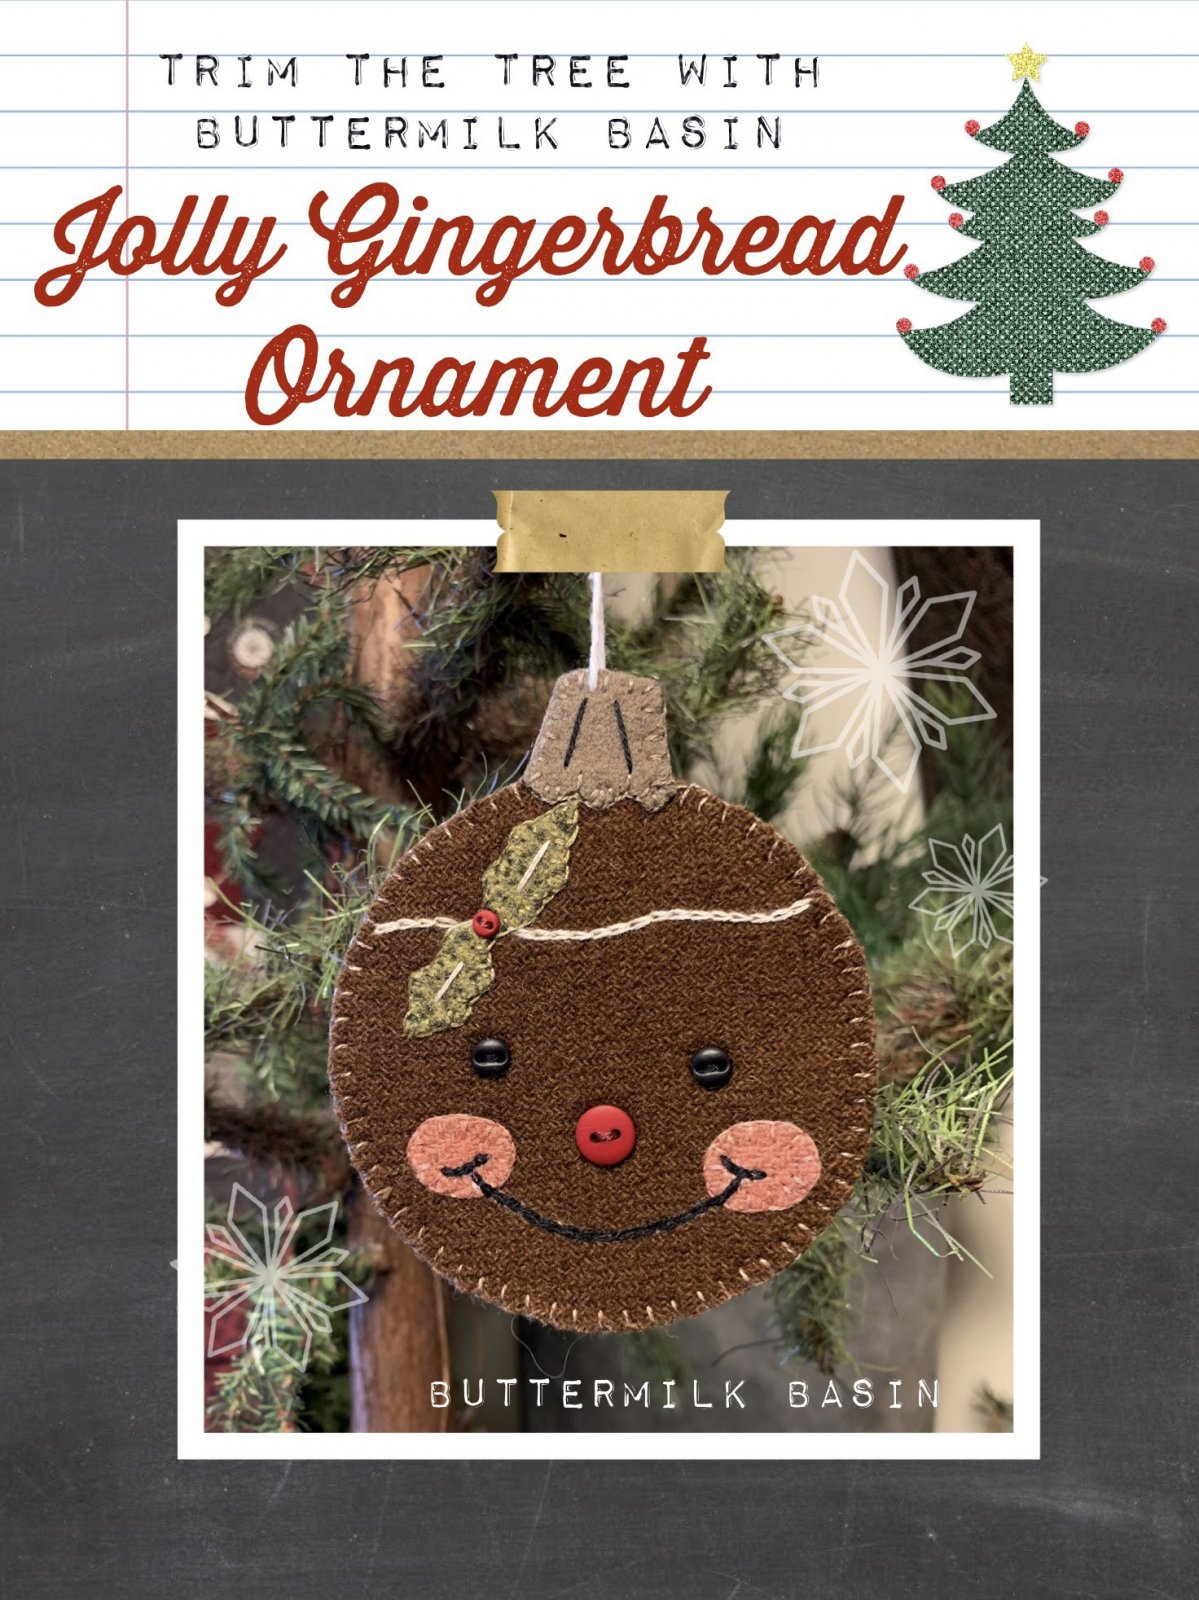 Jolly Gingerbread Ornament Pattern and Kit